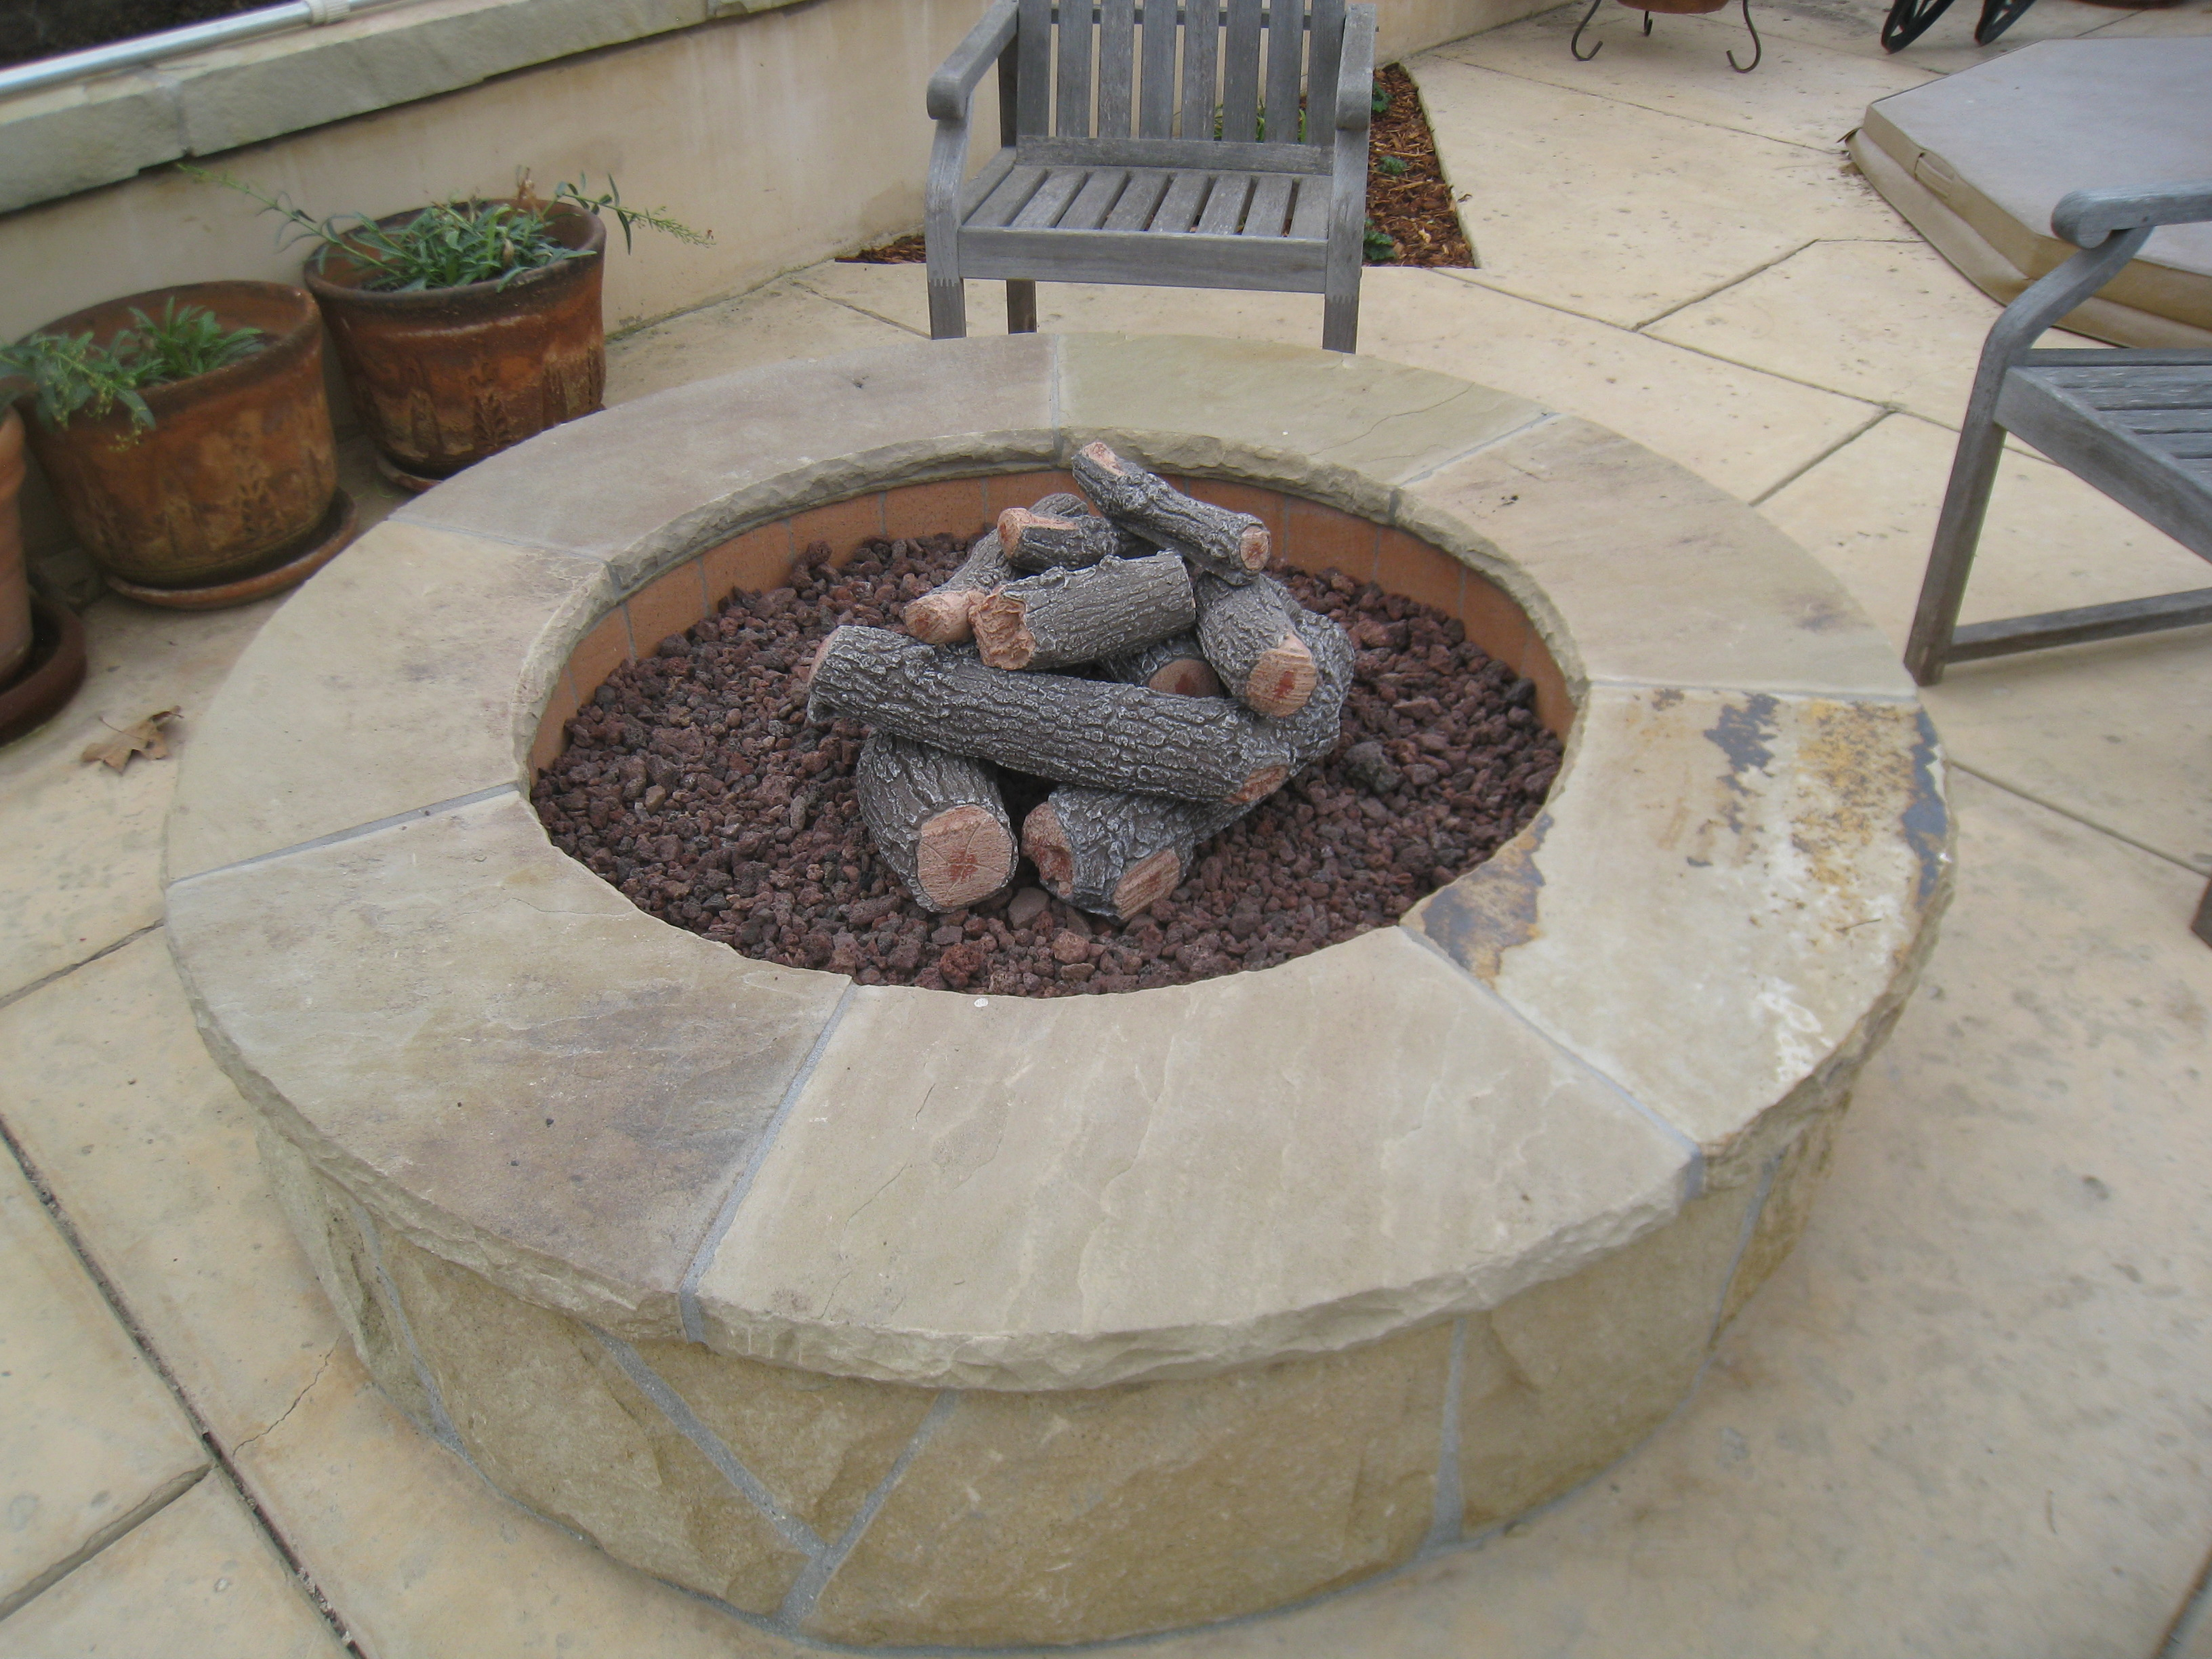 Backyard Fire Pit Ideas Santa Barbara 93103 Down To Earth with regard to sizing 3264 X 2448